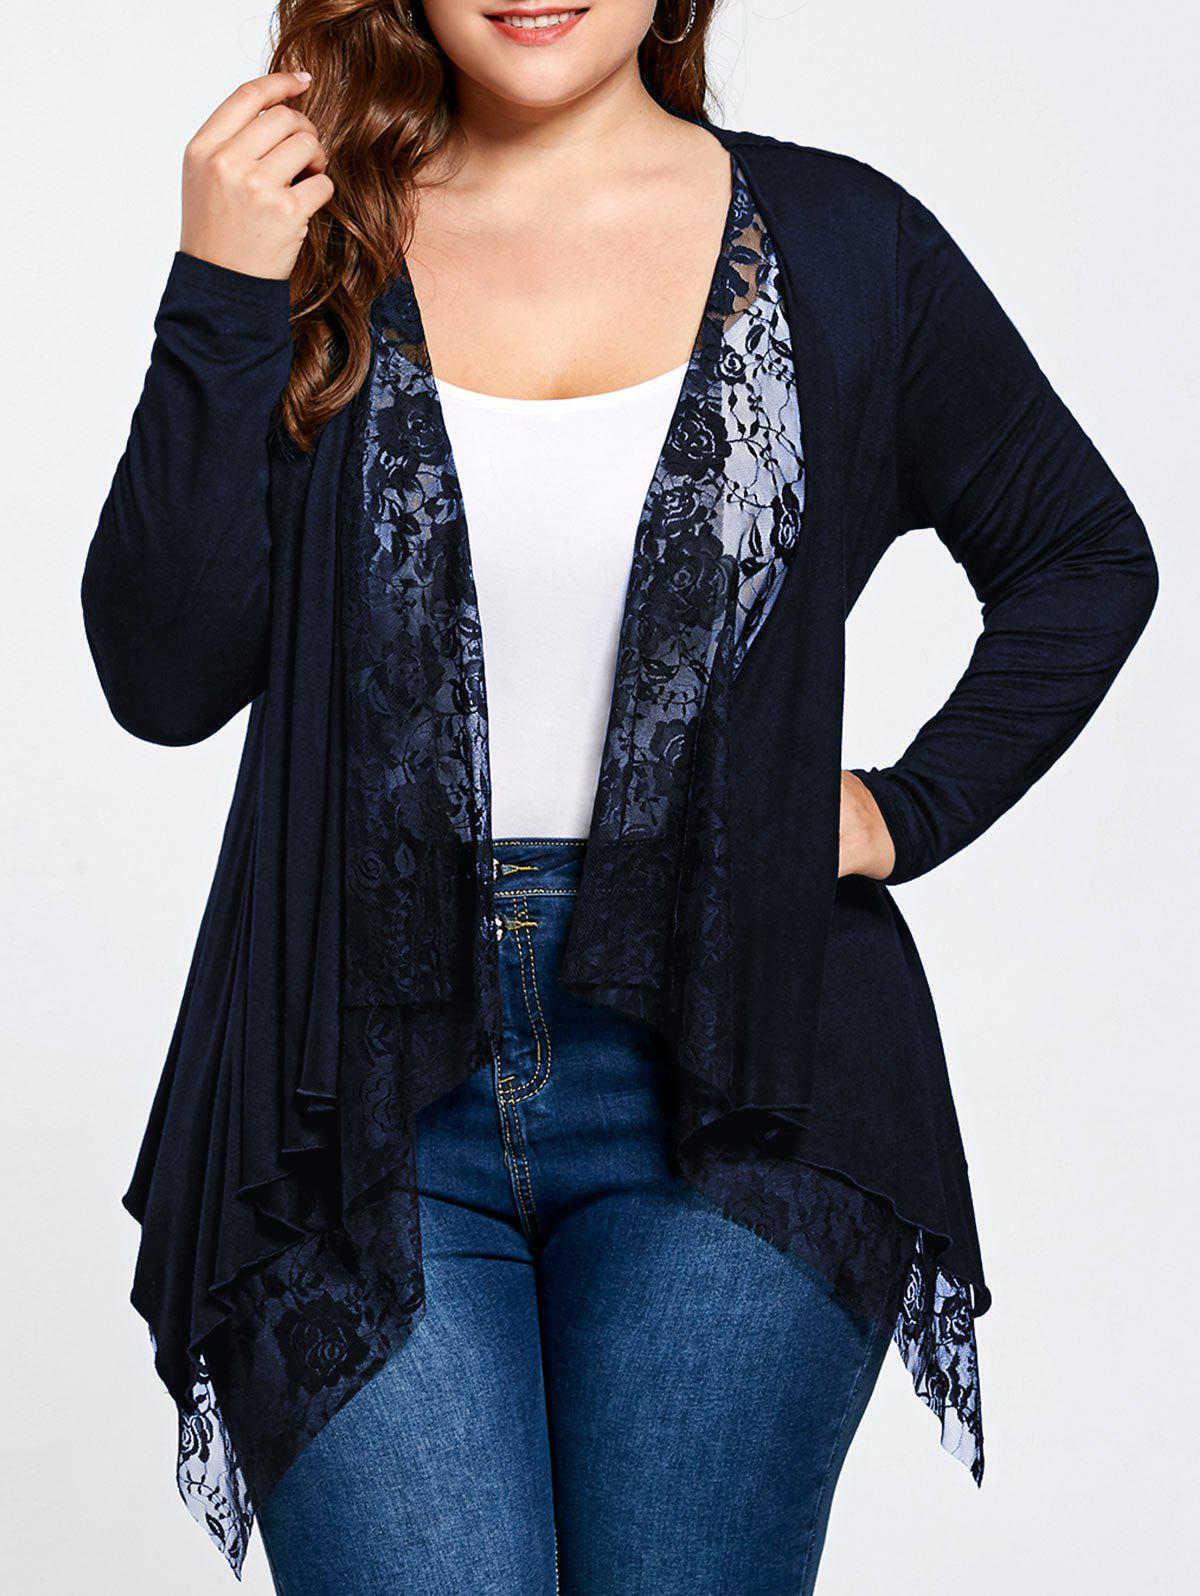 Plus Size Lace Trim Open Front CardiganWOMEN<br><br>Size: 5XL; Color: PURPLISH BLUE; Type: Cardigans; Material: Rayon,Spandex; Sleeve Length: Full; Collar: Collarless; Style: Fashion; Season: Fall,Spring,Summer; Pattern Type: Solid; Weight: 0.3400kg; Package Contents: 1 x Cardigan;